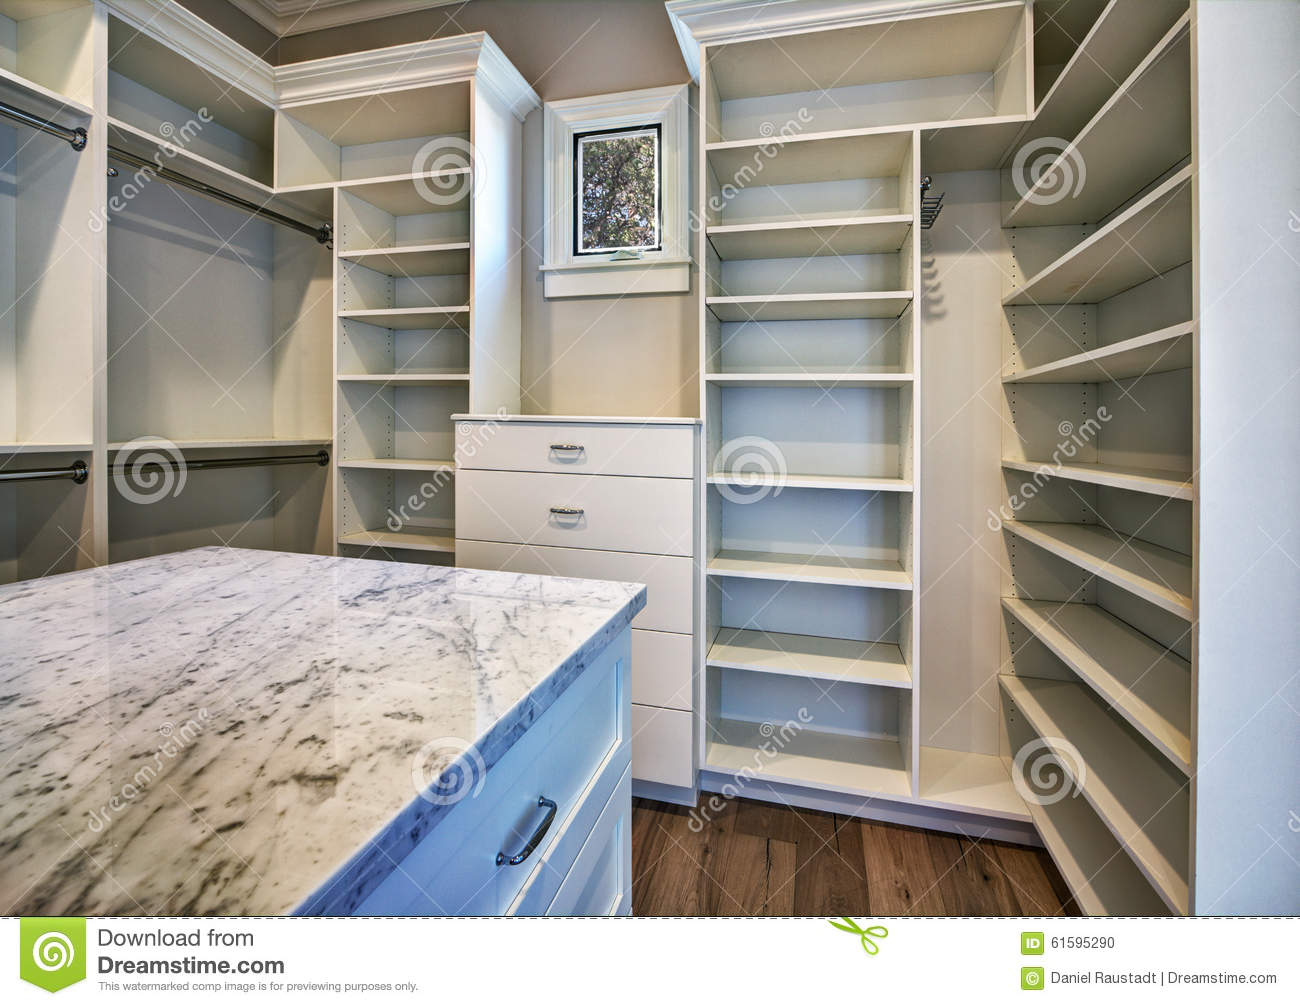 Master Bedroom Closet new modern home master bedroom closet stock photo - image: 61595290